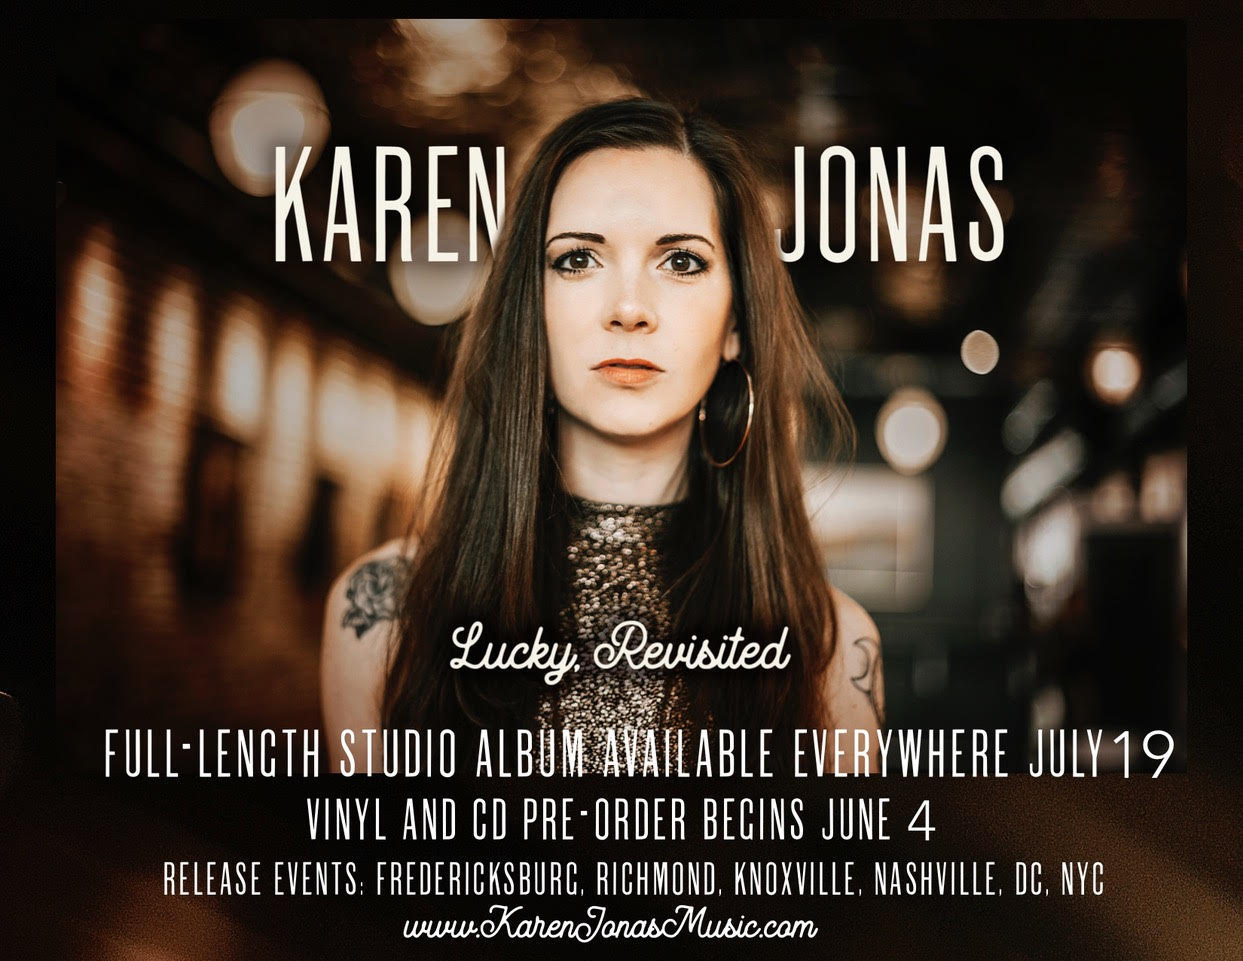 """Karen Jonas - Karen Jonas is an Americana singer/songwriter from Fredericksburg, Va. Her intensely personal songwriting first grabbed national attention with the release of her critically acclaimed 2014 debut album Oklahoma Lottery, and international praise with her second album, Country Songs. She was recently named """"Best Country/Americana Artist"""" by the Washington (DC) Area Music Awards. Her fourth studio album, """"Lucky, Revisited"""" released on July 19, 2019.WebsiteFacebookInstagramTwitterYouTube"""